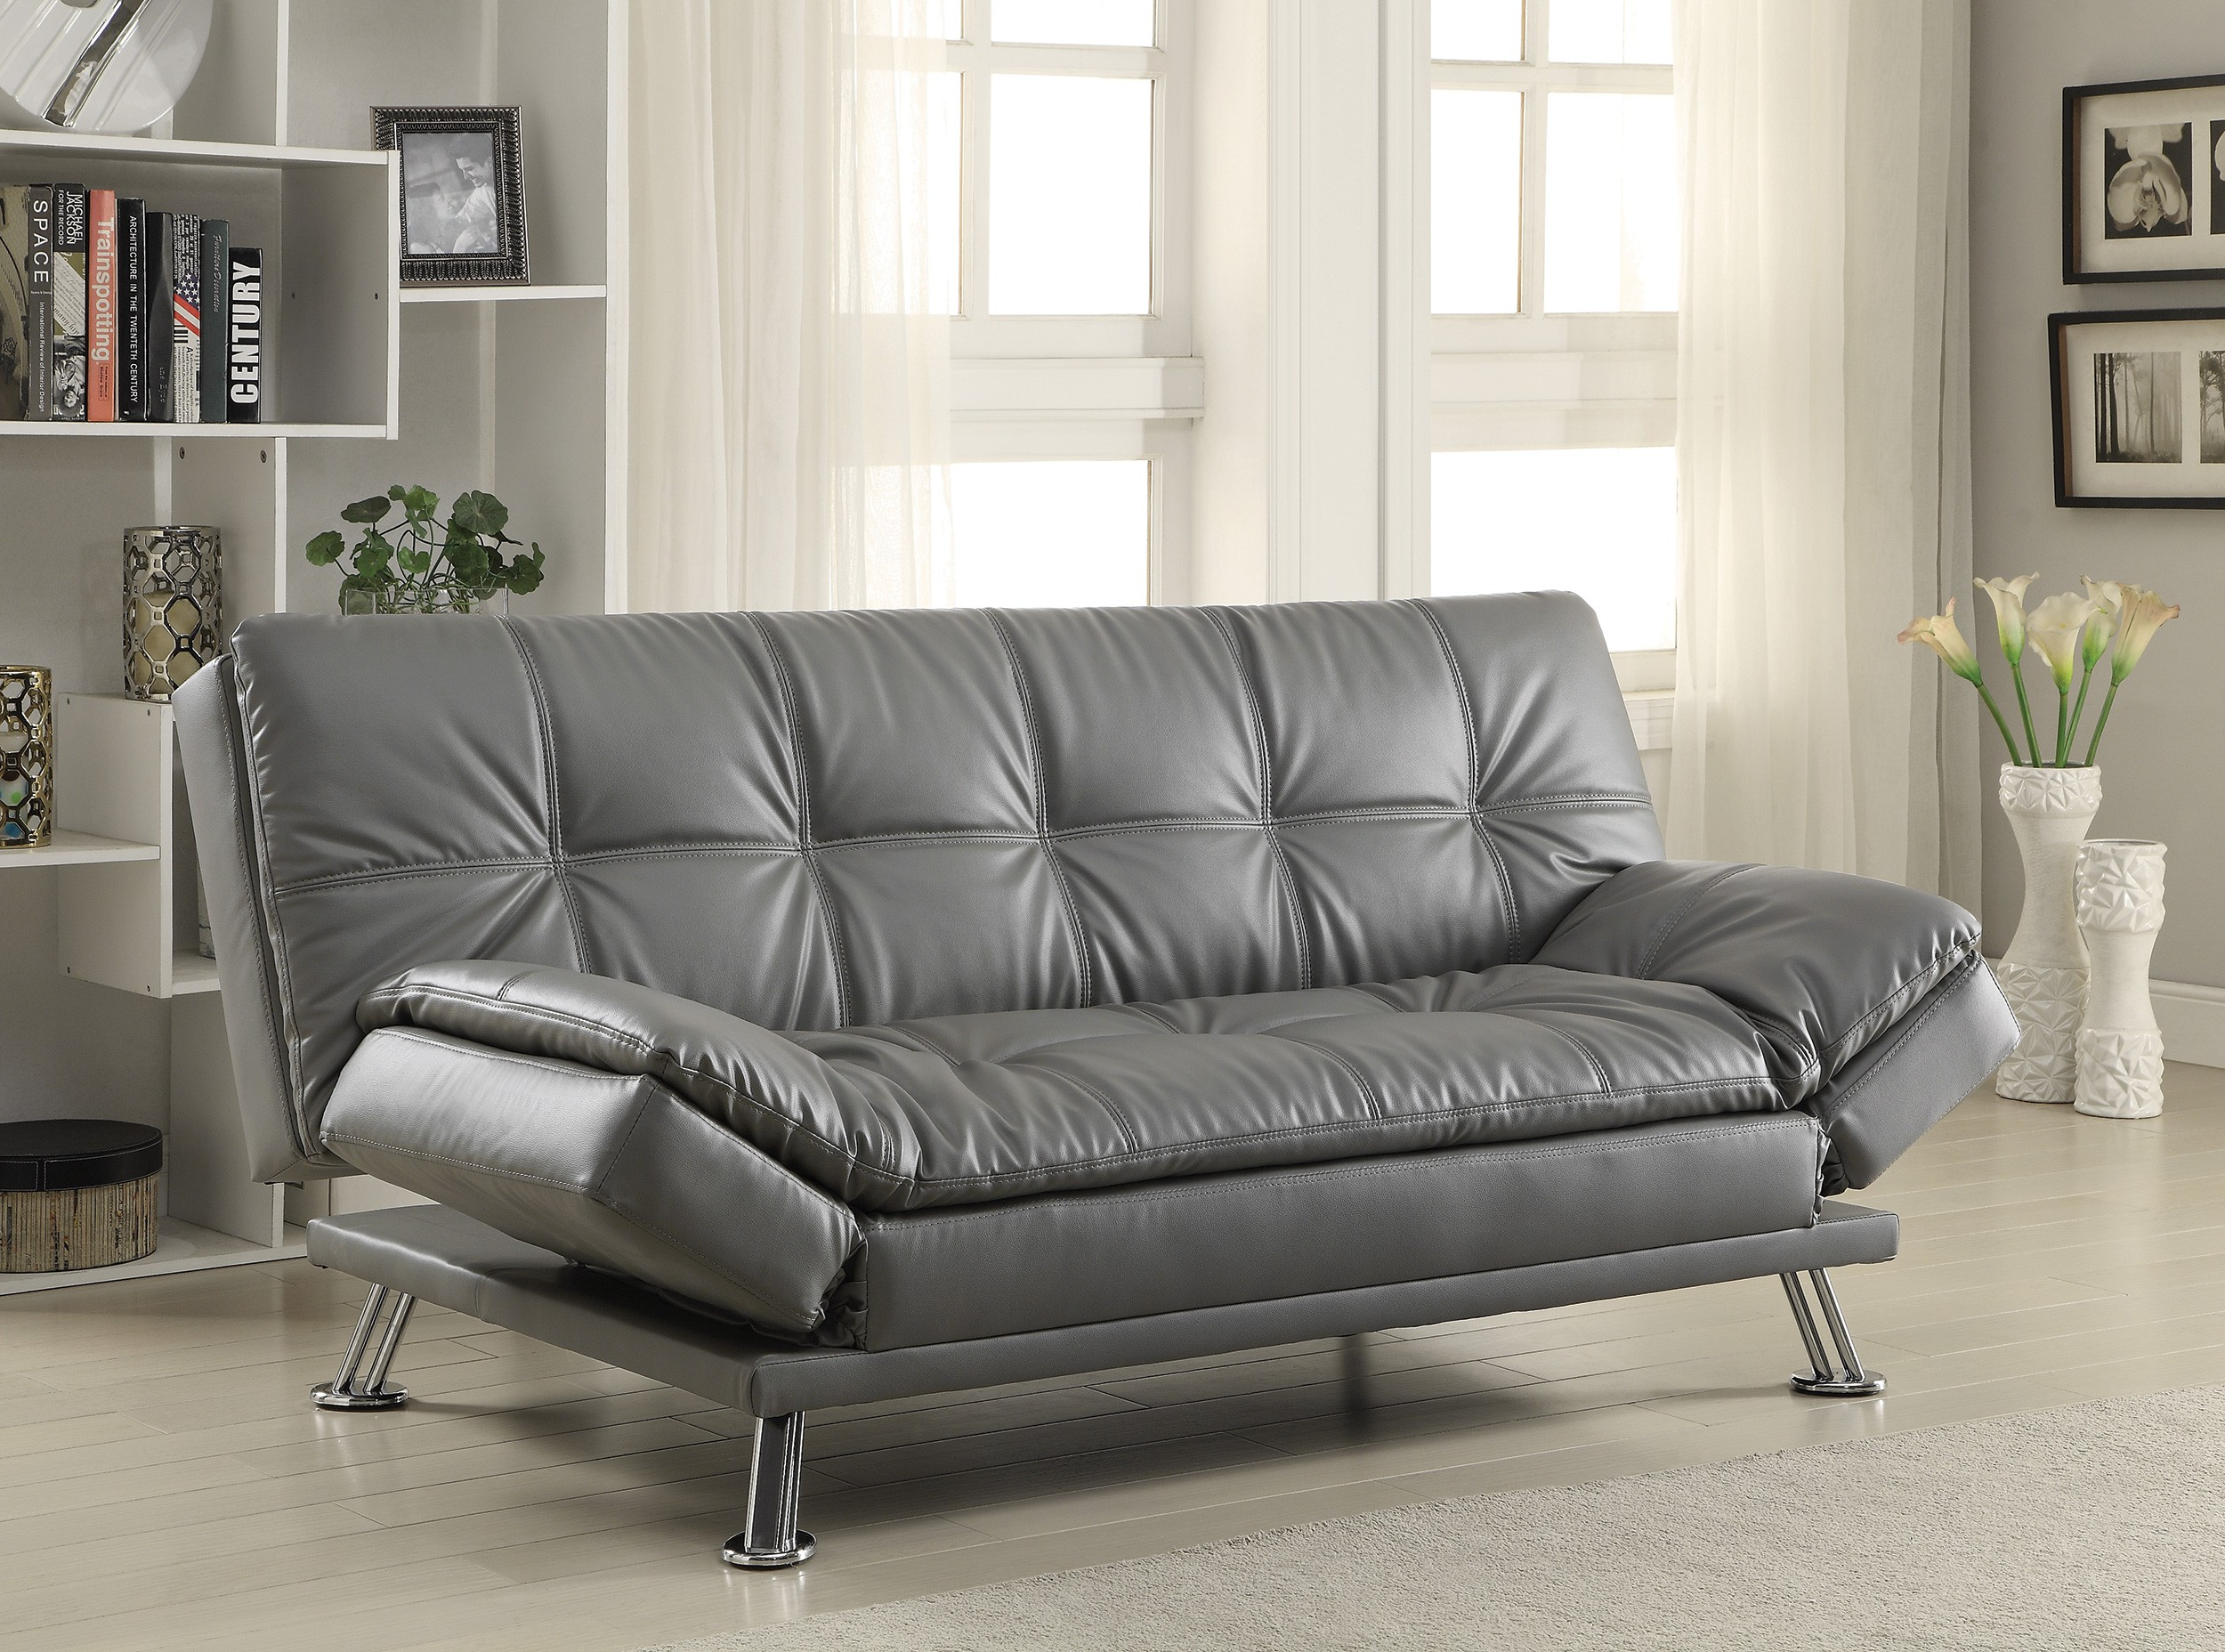 Strange Sofa Bed Grey With Available Matching Chaise And Storage Squirreltailoven Fun Painted Chair Ideas Images Squirreltailovenorg